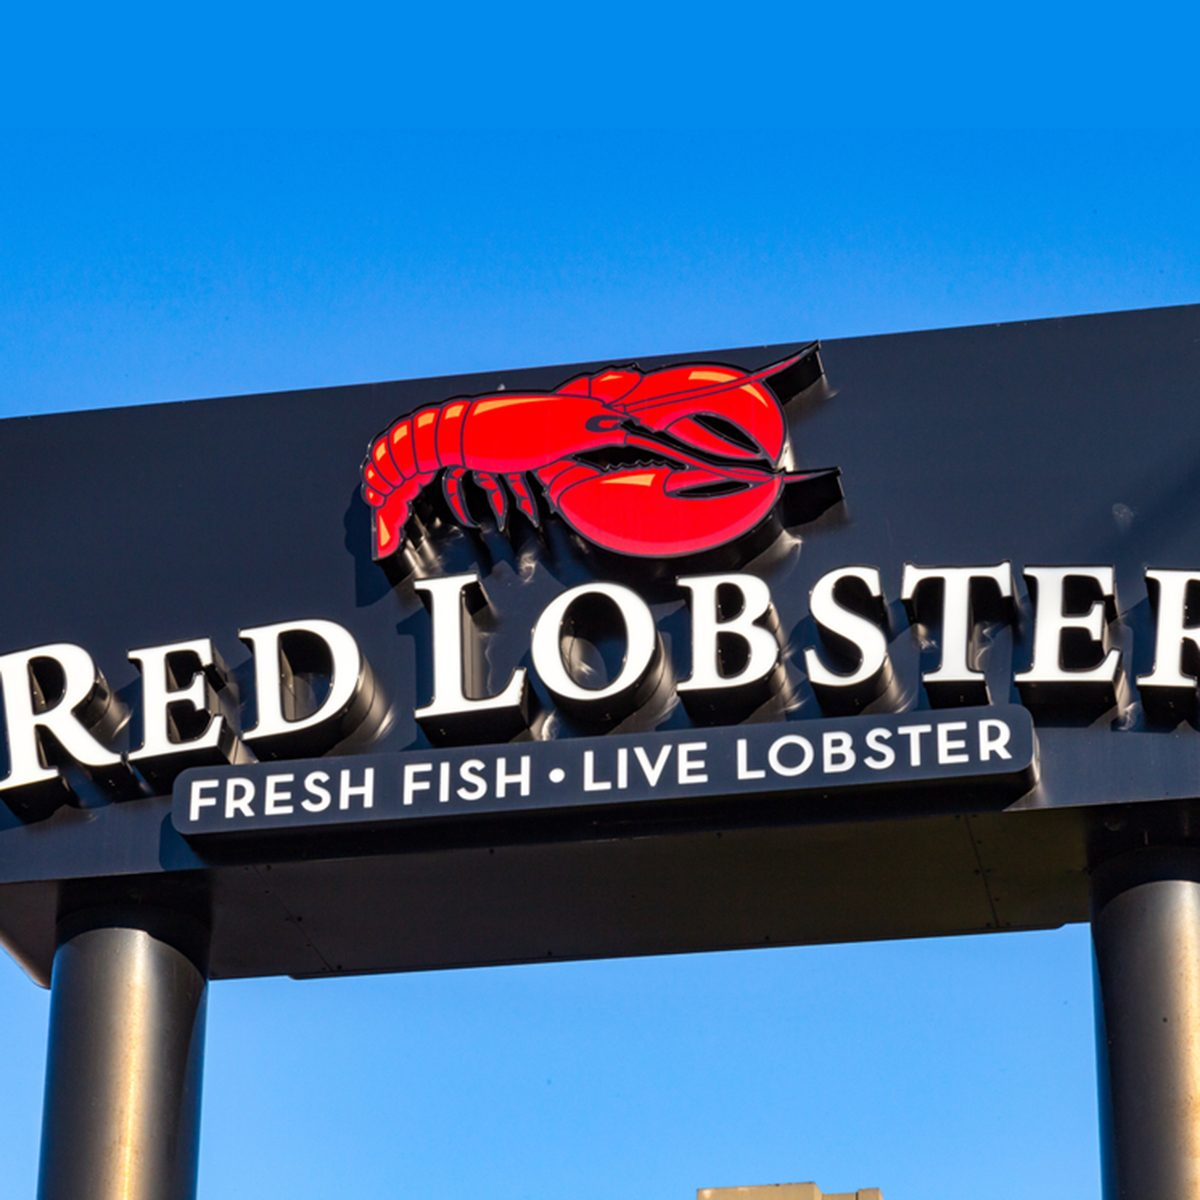 Exterior sign and logo of the Red Lobster Seafood Restaurant